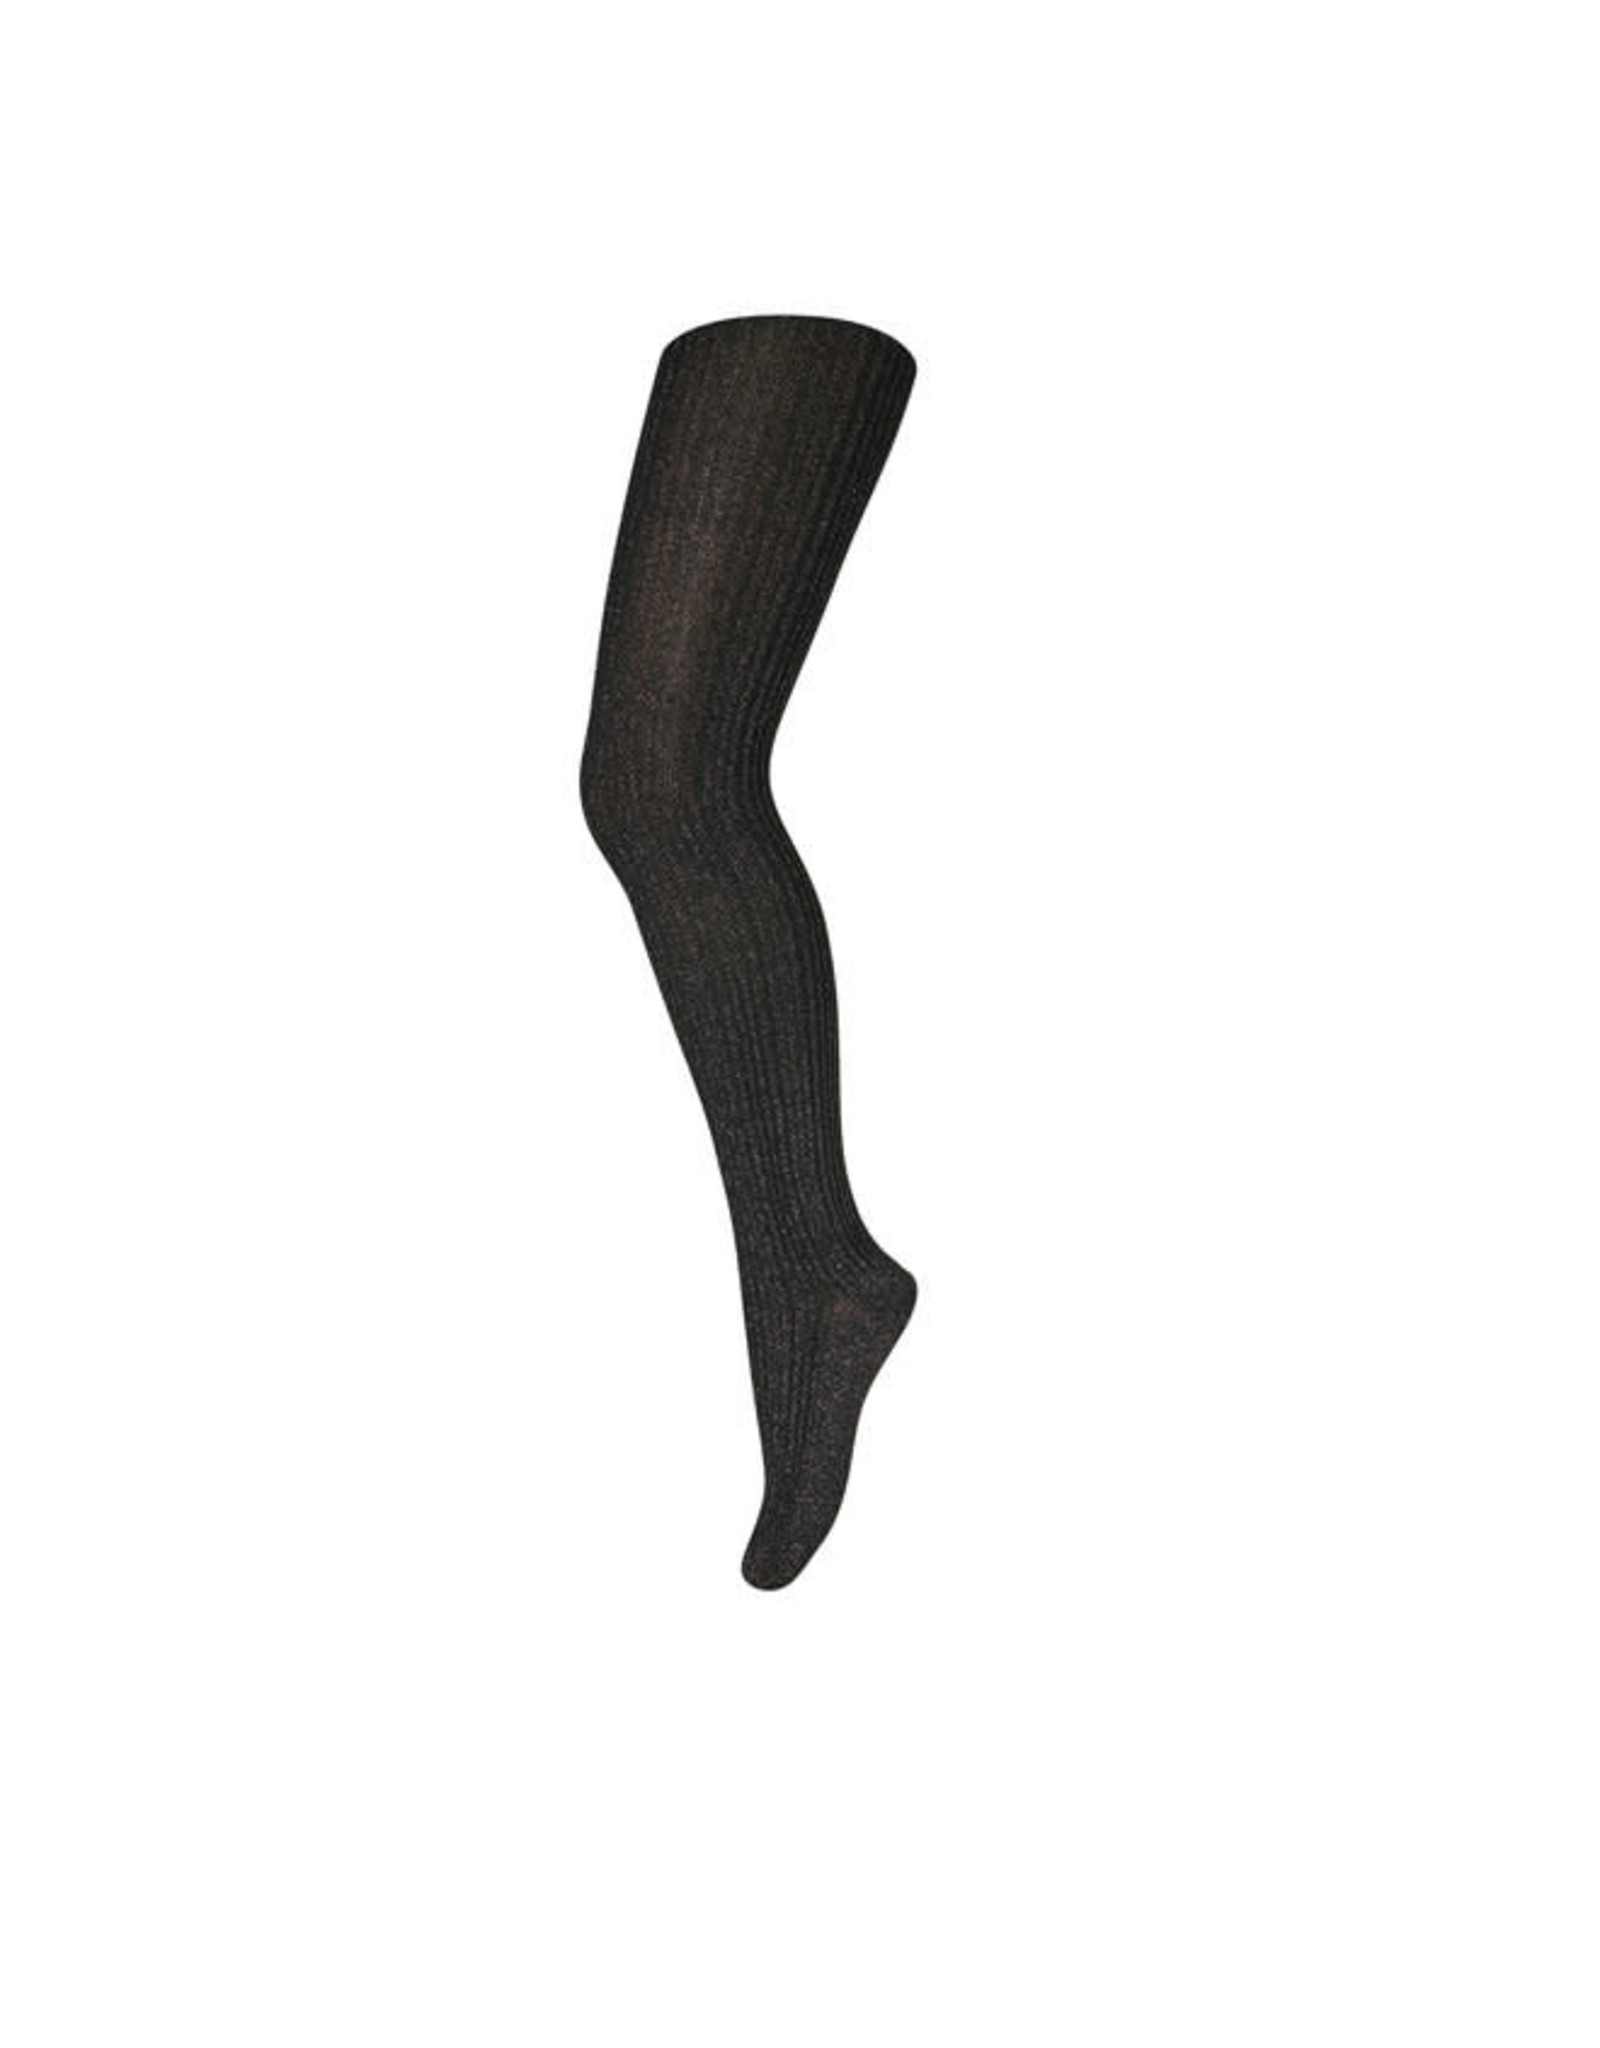 MP Denmark 19025 tights celosia with lurex // 4254 deep forest